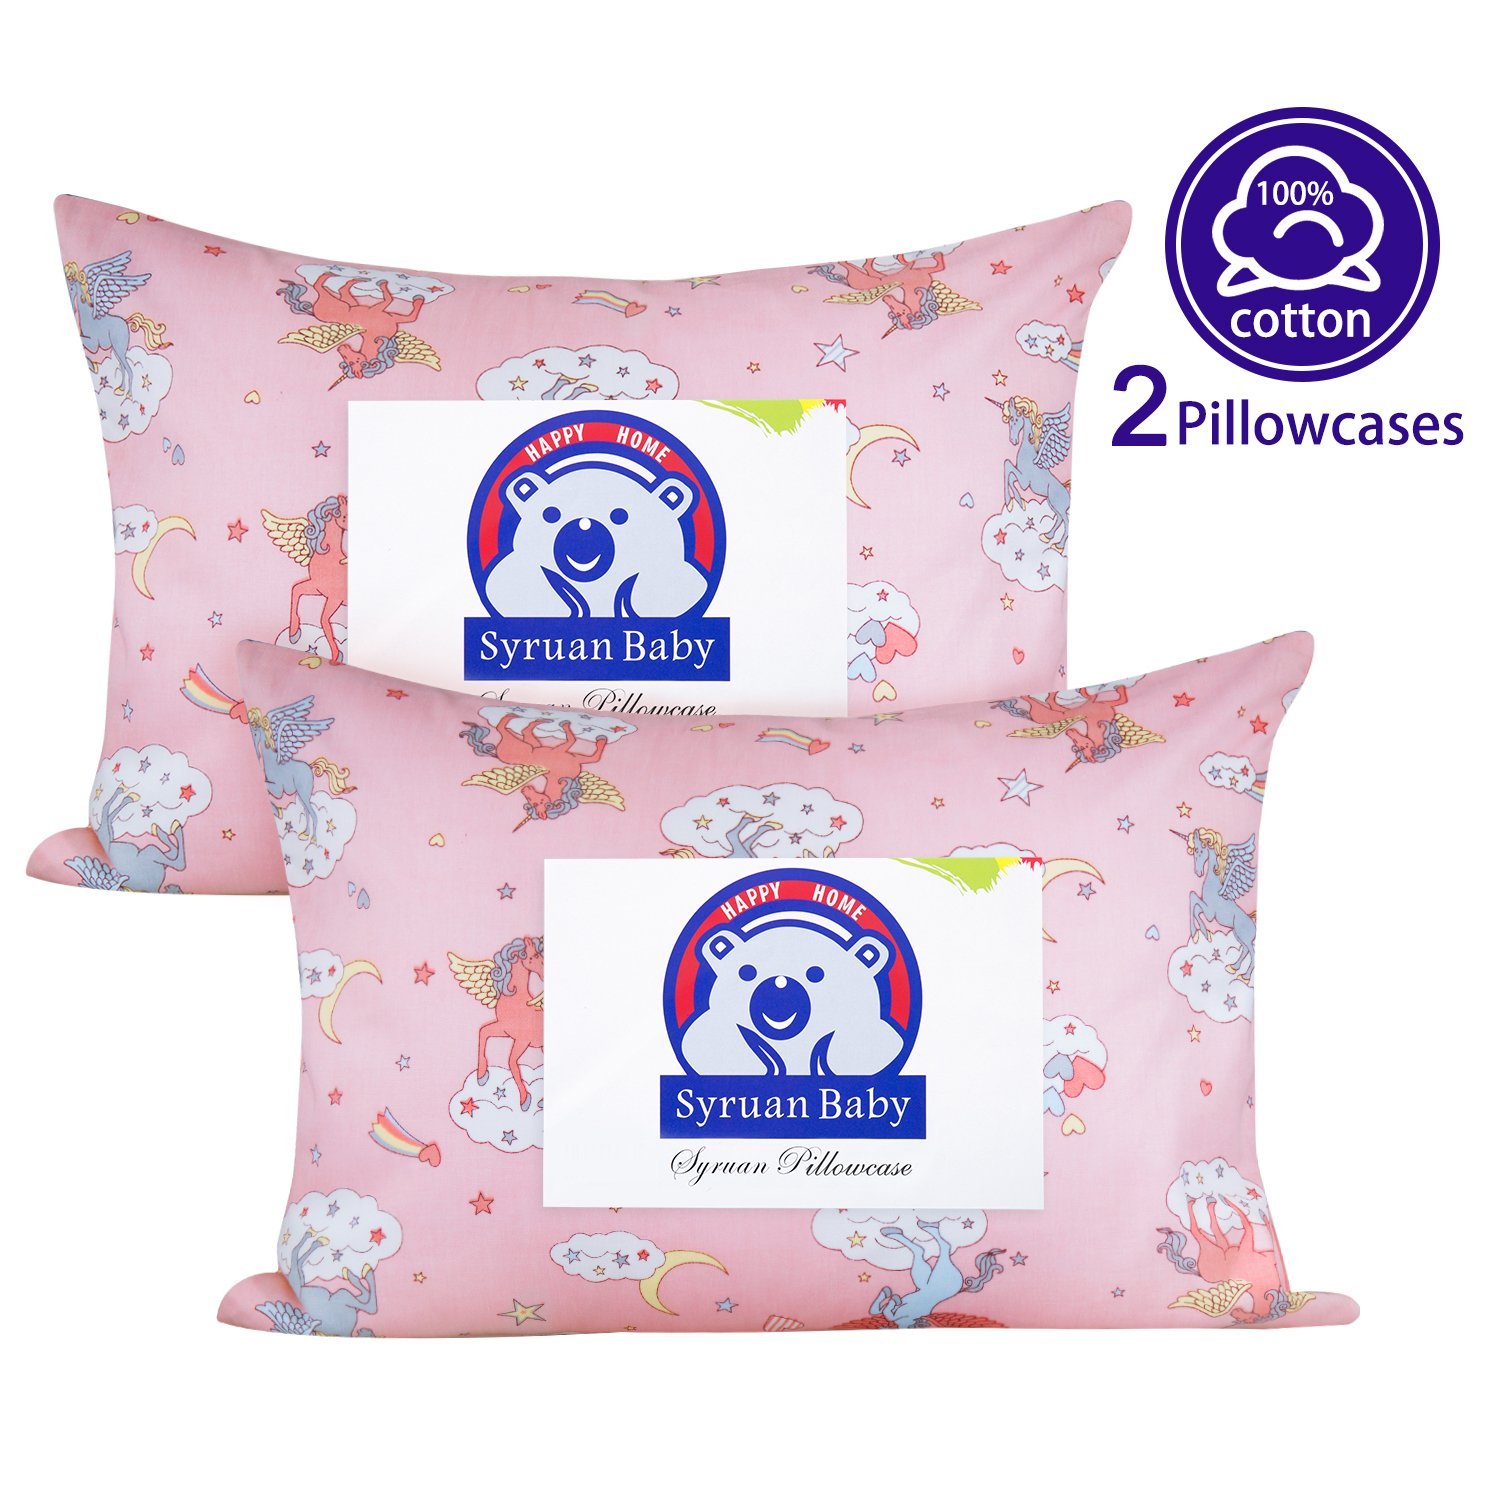 Kids Toddler Pillowcases Syruan 2 Pack 100% Cotton Pillow Cover Cases 13 x 18 for Kids Bedding Green/Purple/Pink/White. … (Pink)